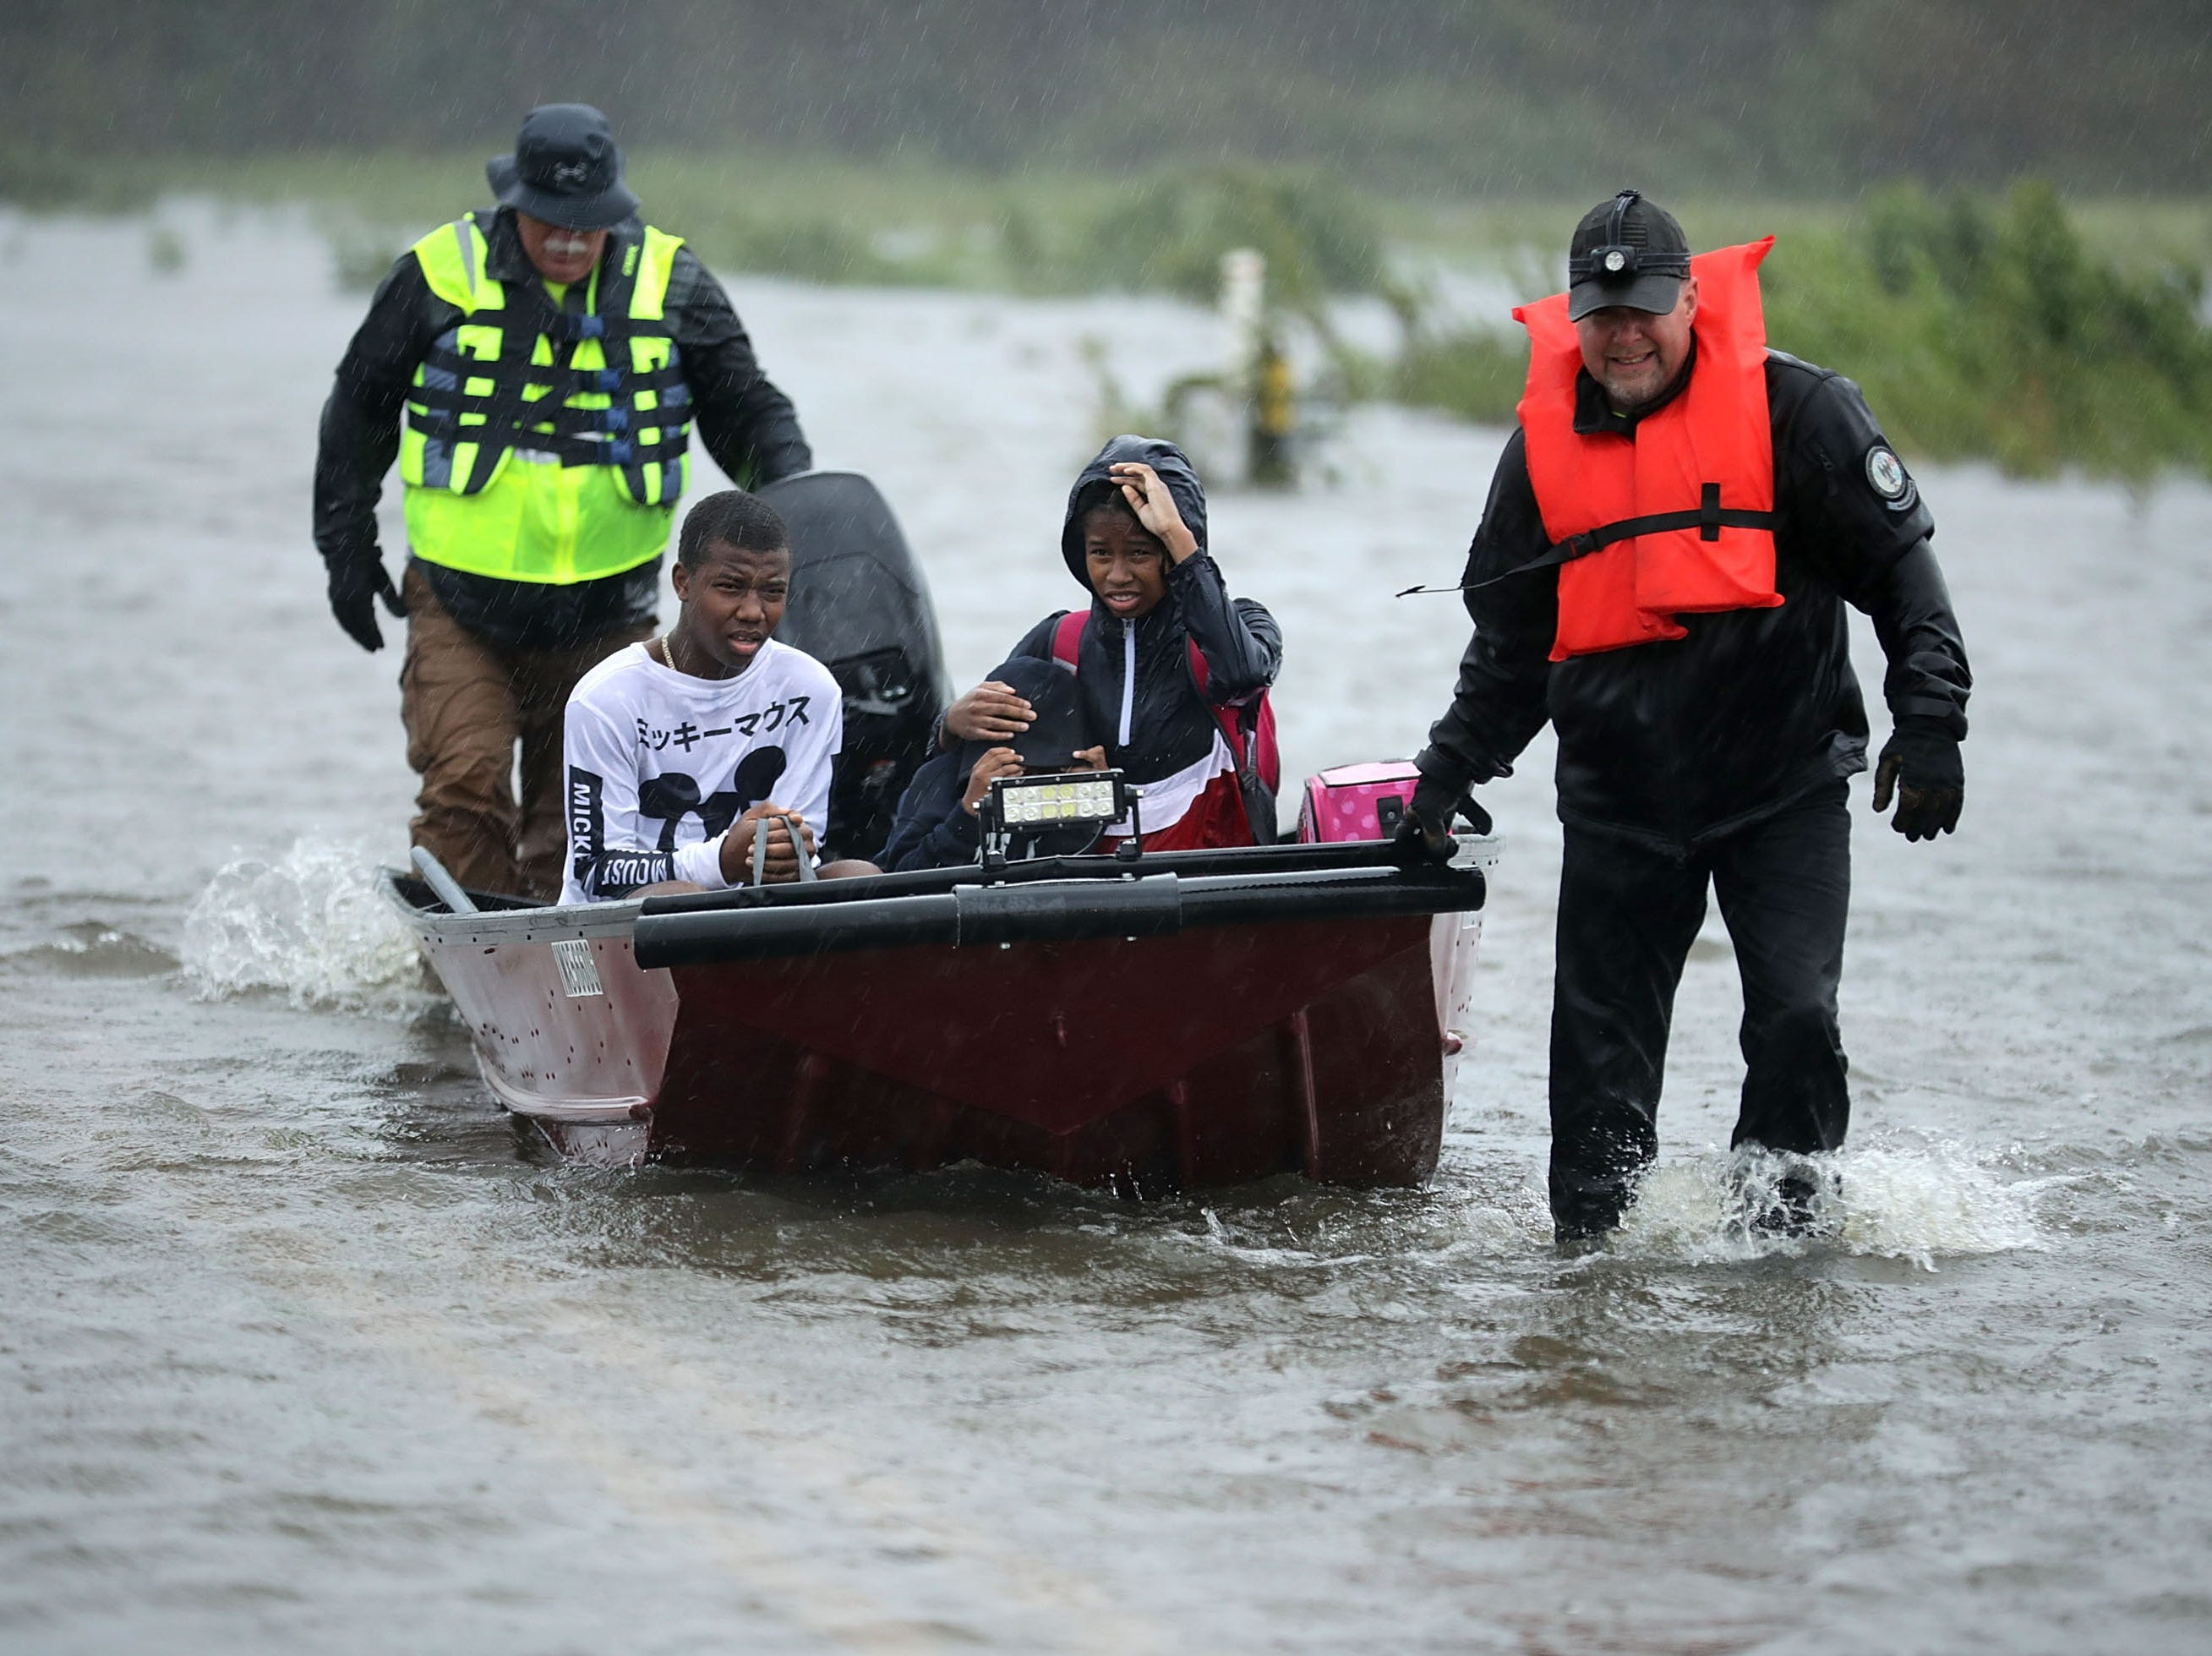 JAMES CITY, NC - SEPTEMBER 14:  Volunteers from the Civilian Crisis Response Team help rescue three children from their flooded home September 14, 2018 in James City, United States. Hurricane Florence made landfall in North Carolina as a Category 1 storm and flooding from the heavy rain is forcing hundreds of people to call for emergency rescues in the area around New Bern, North Carolina, which sits at the confluence of the Nueces and Trent rivers.